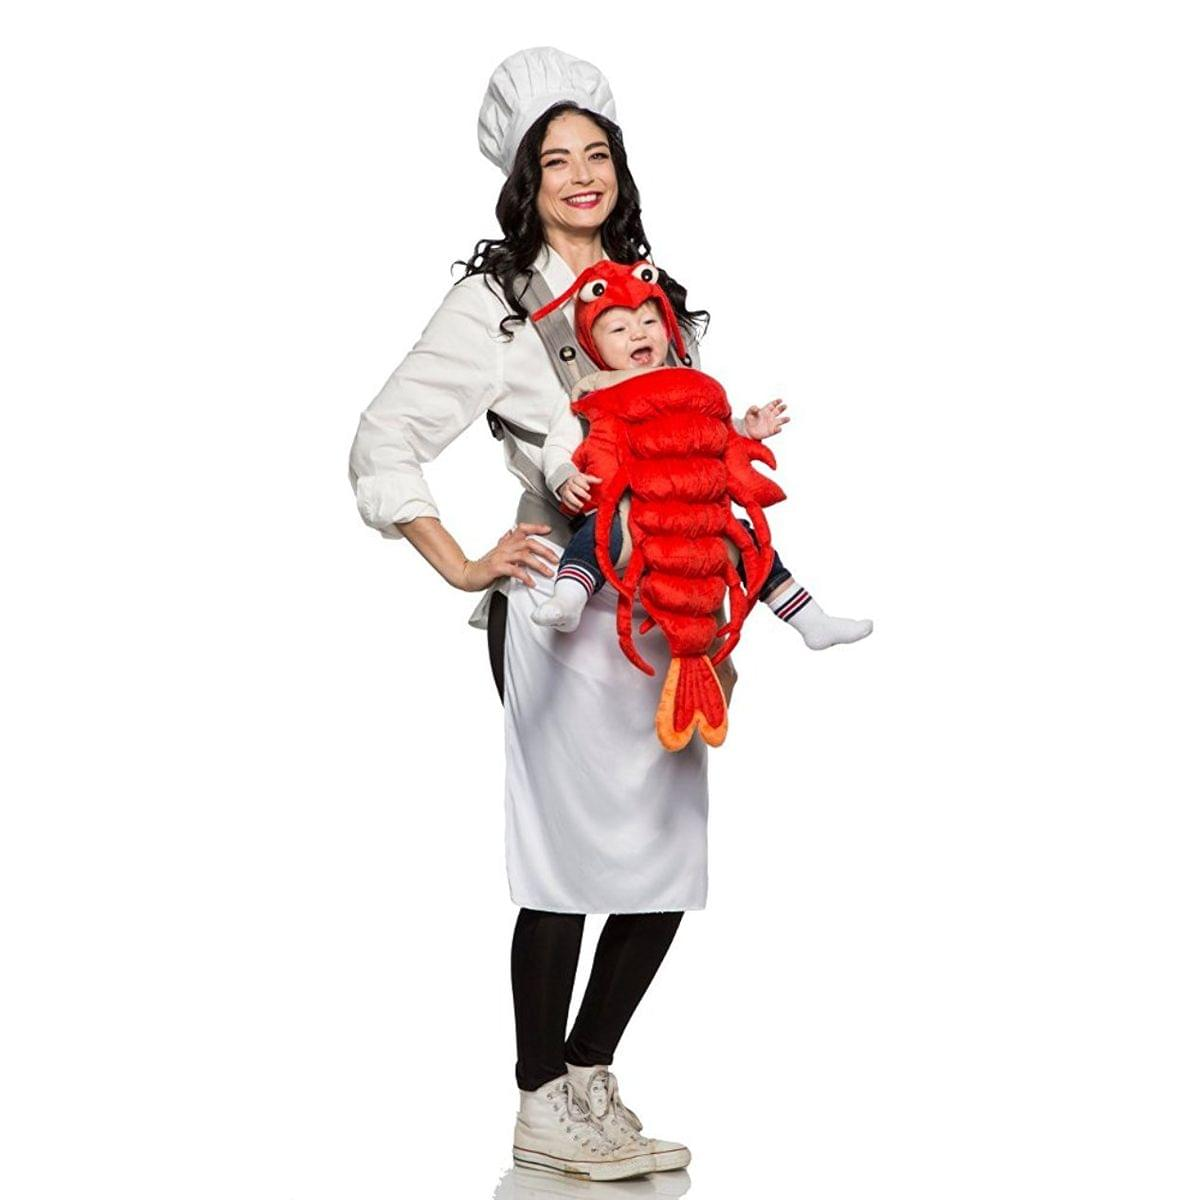 Master Chef and Maine Lobster Mommy & Me Costume